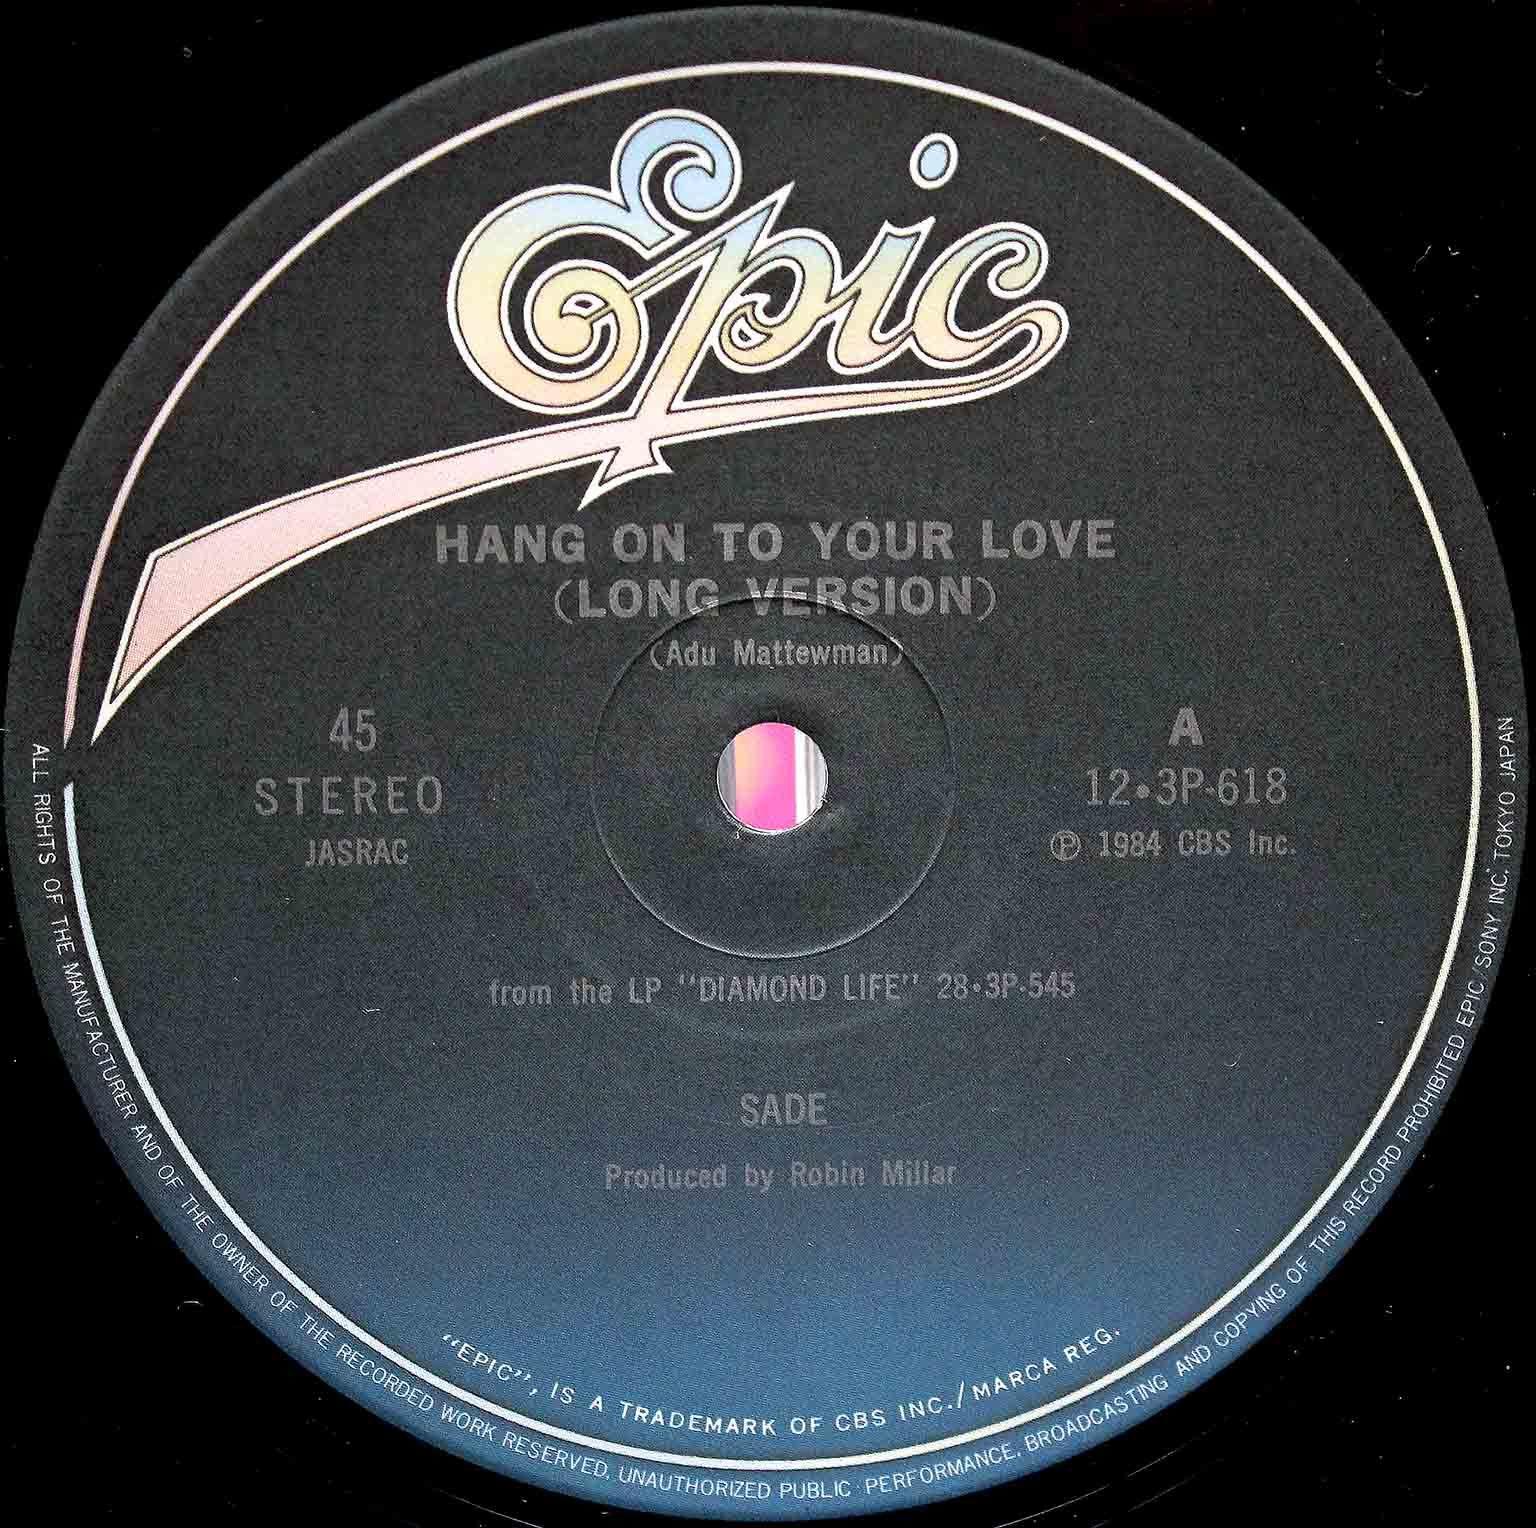 Sade hang on your love 03